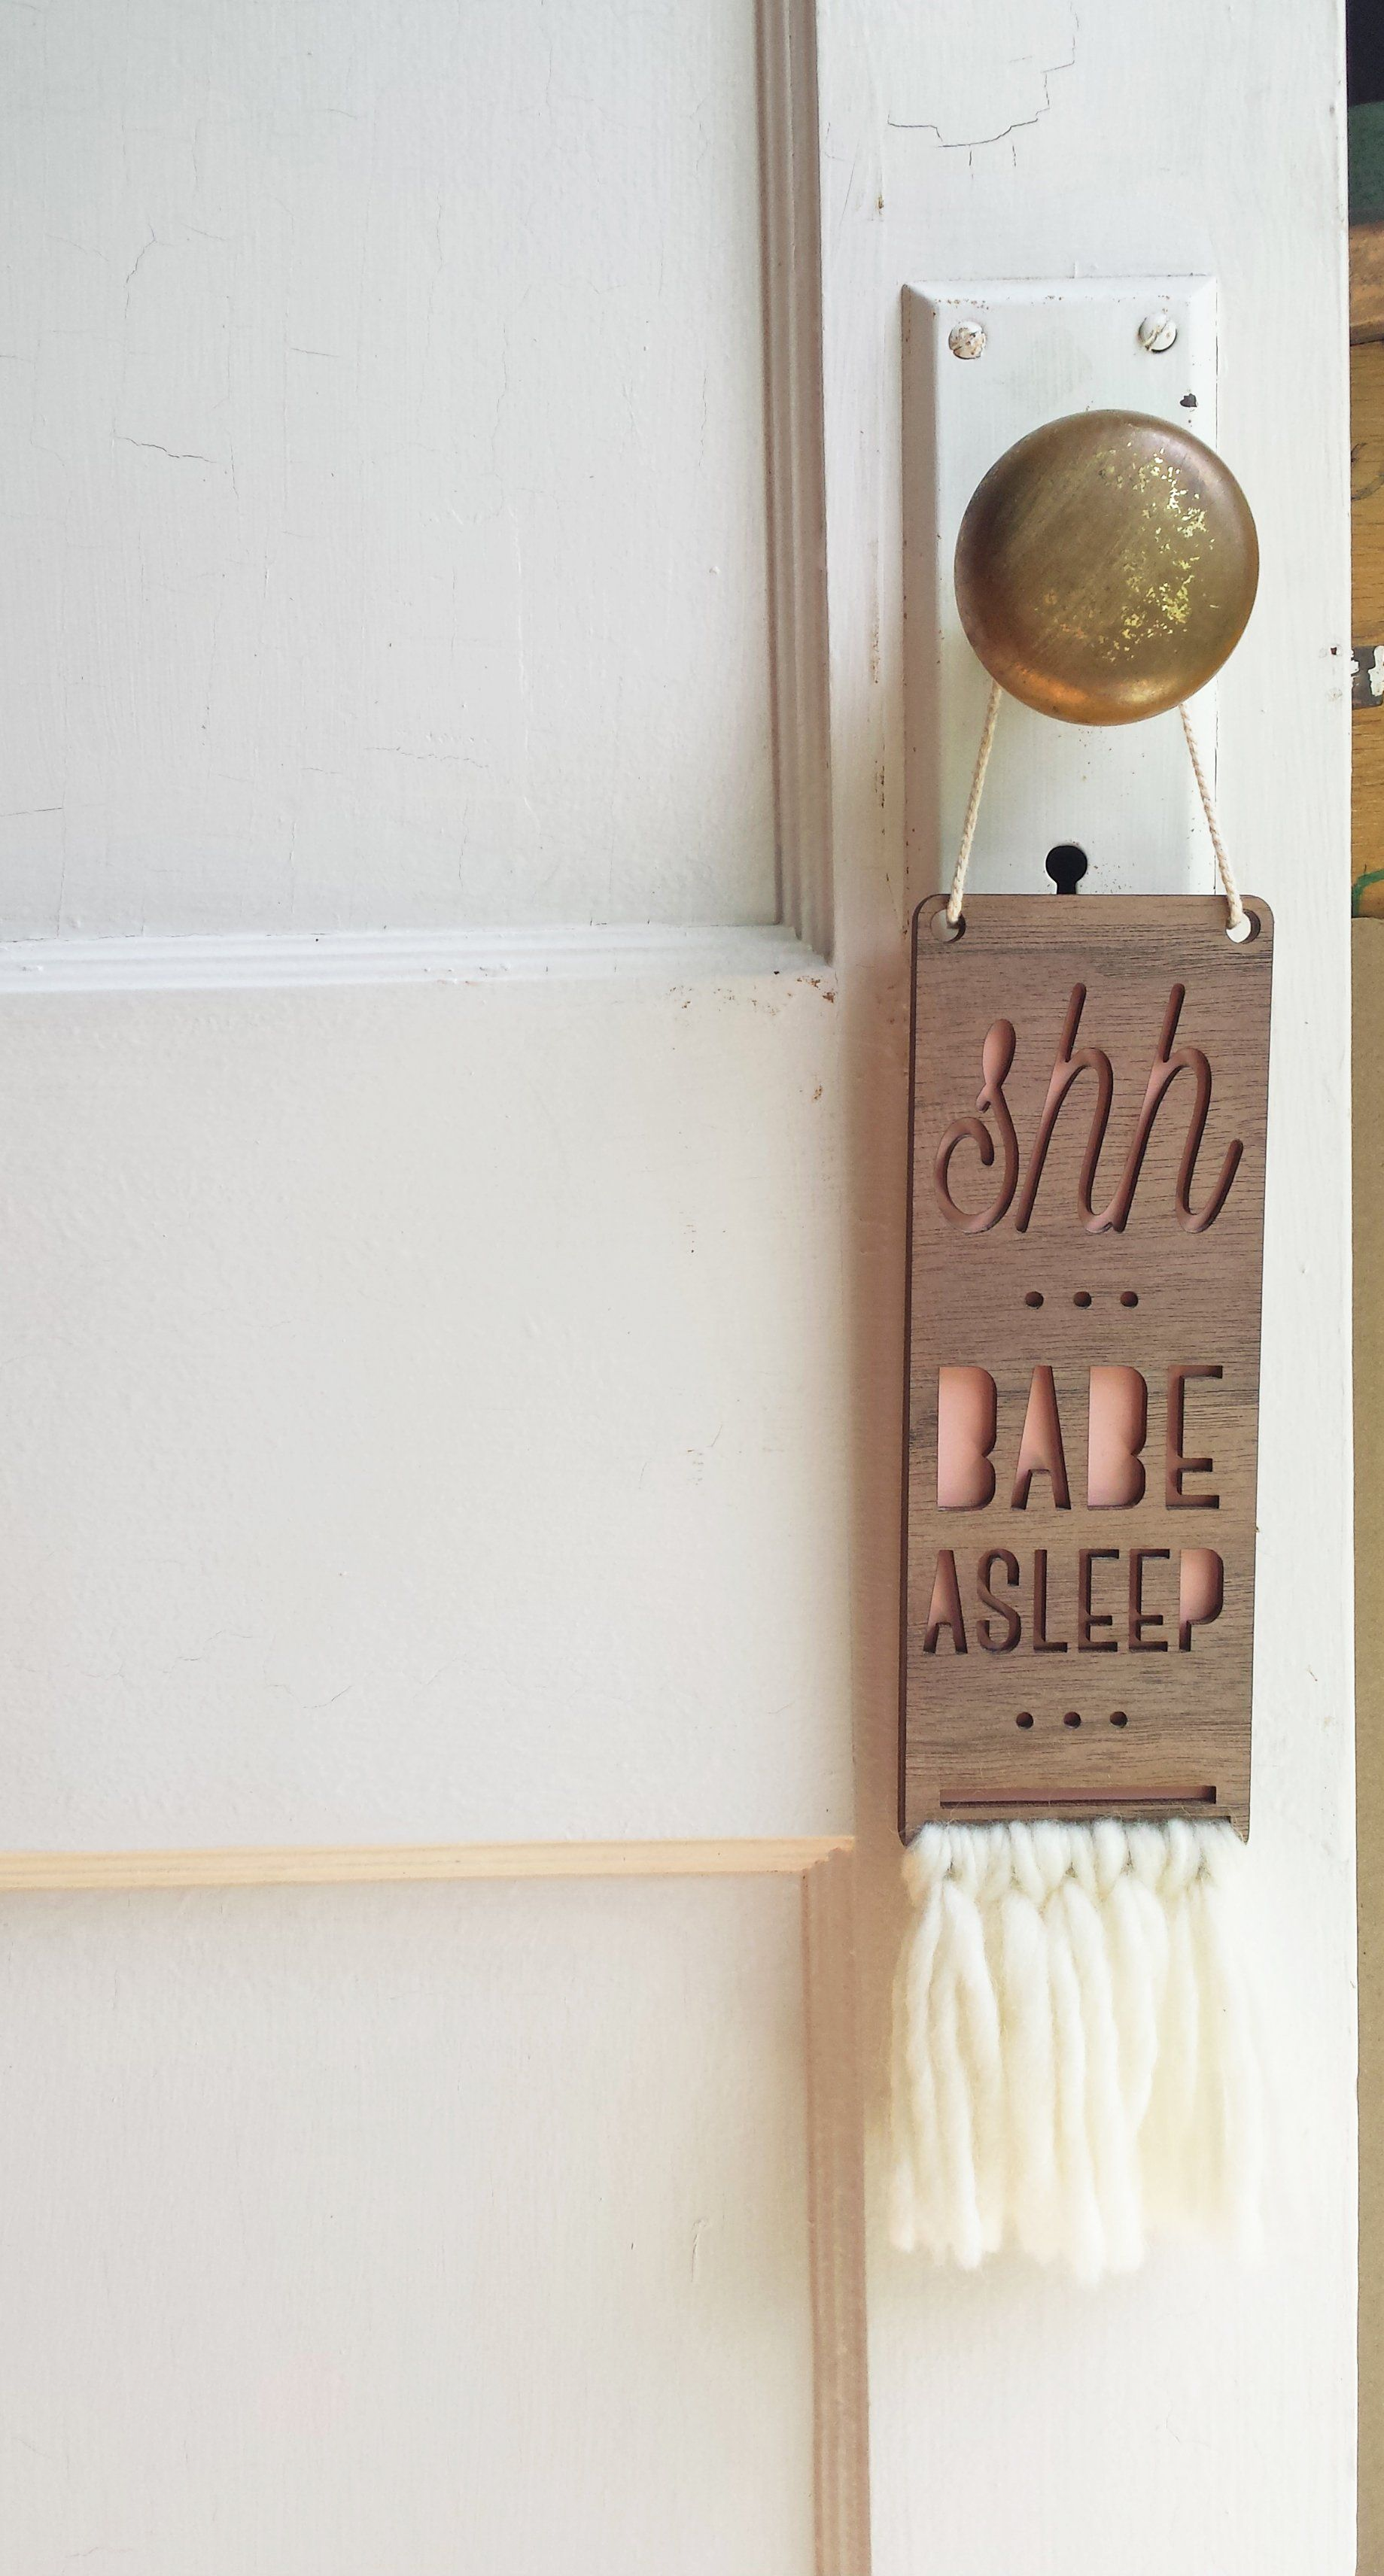 Babe Asleep Baby Door Sign - Project Nursery